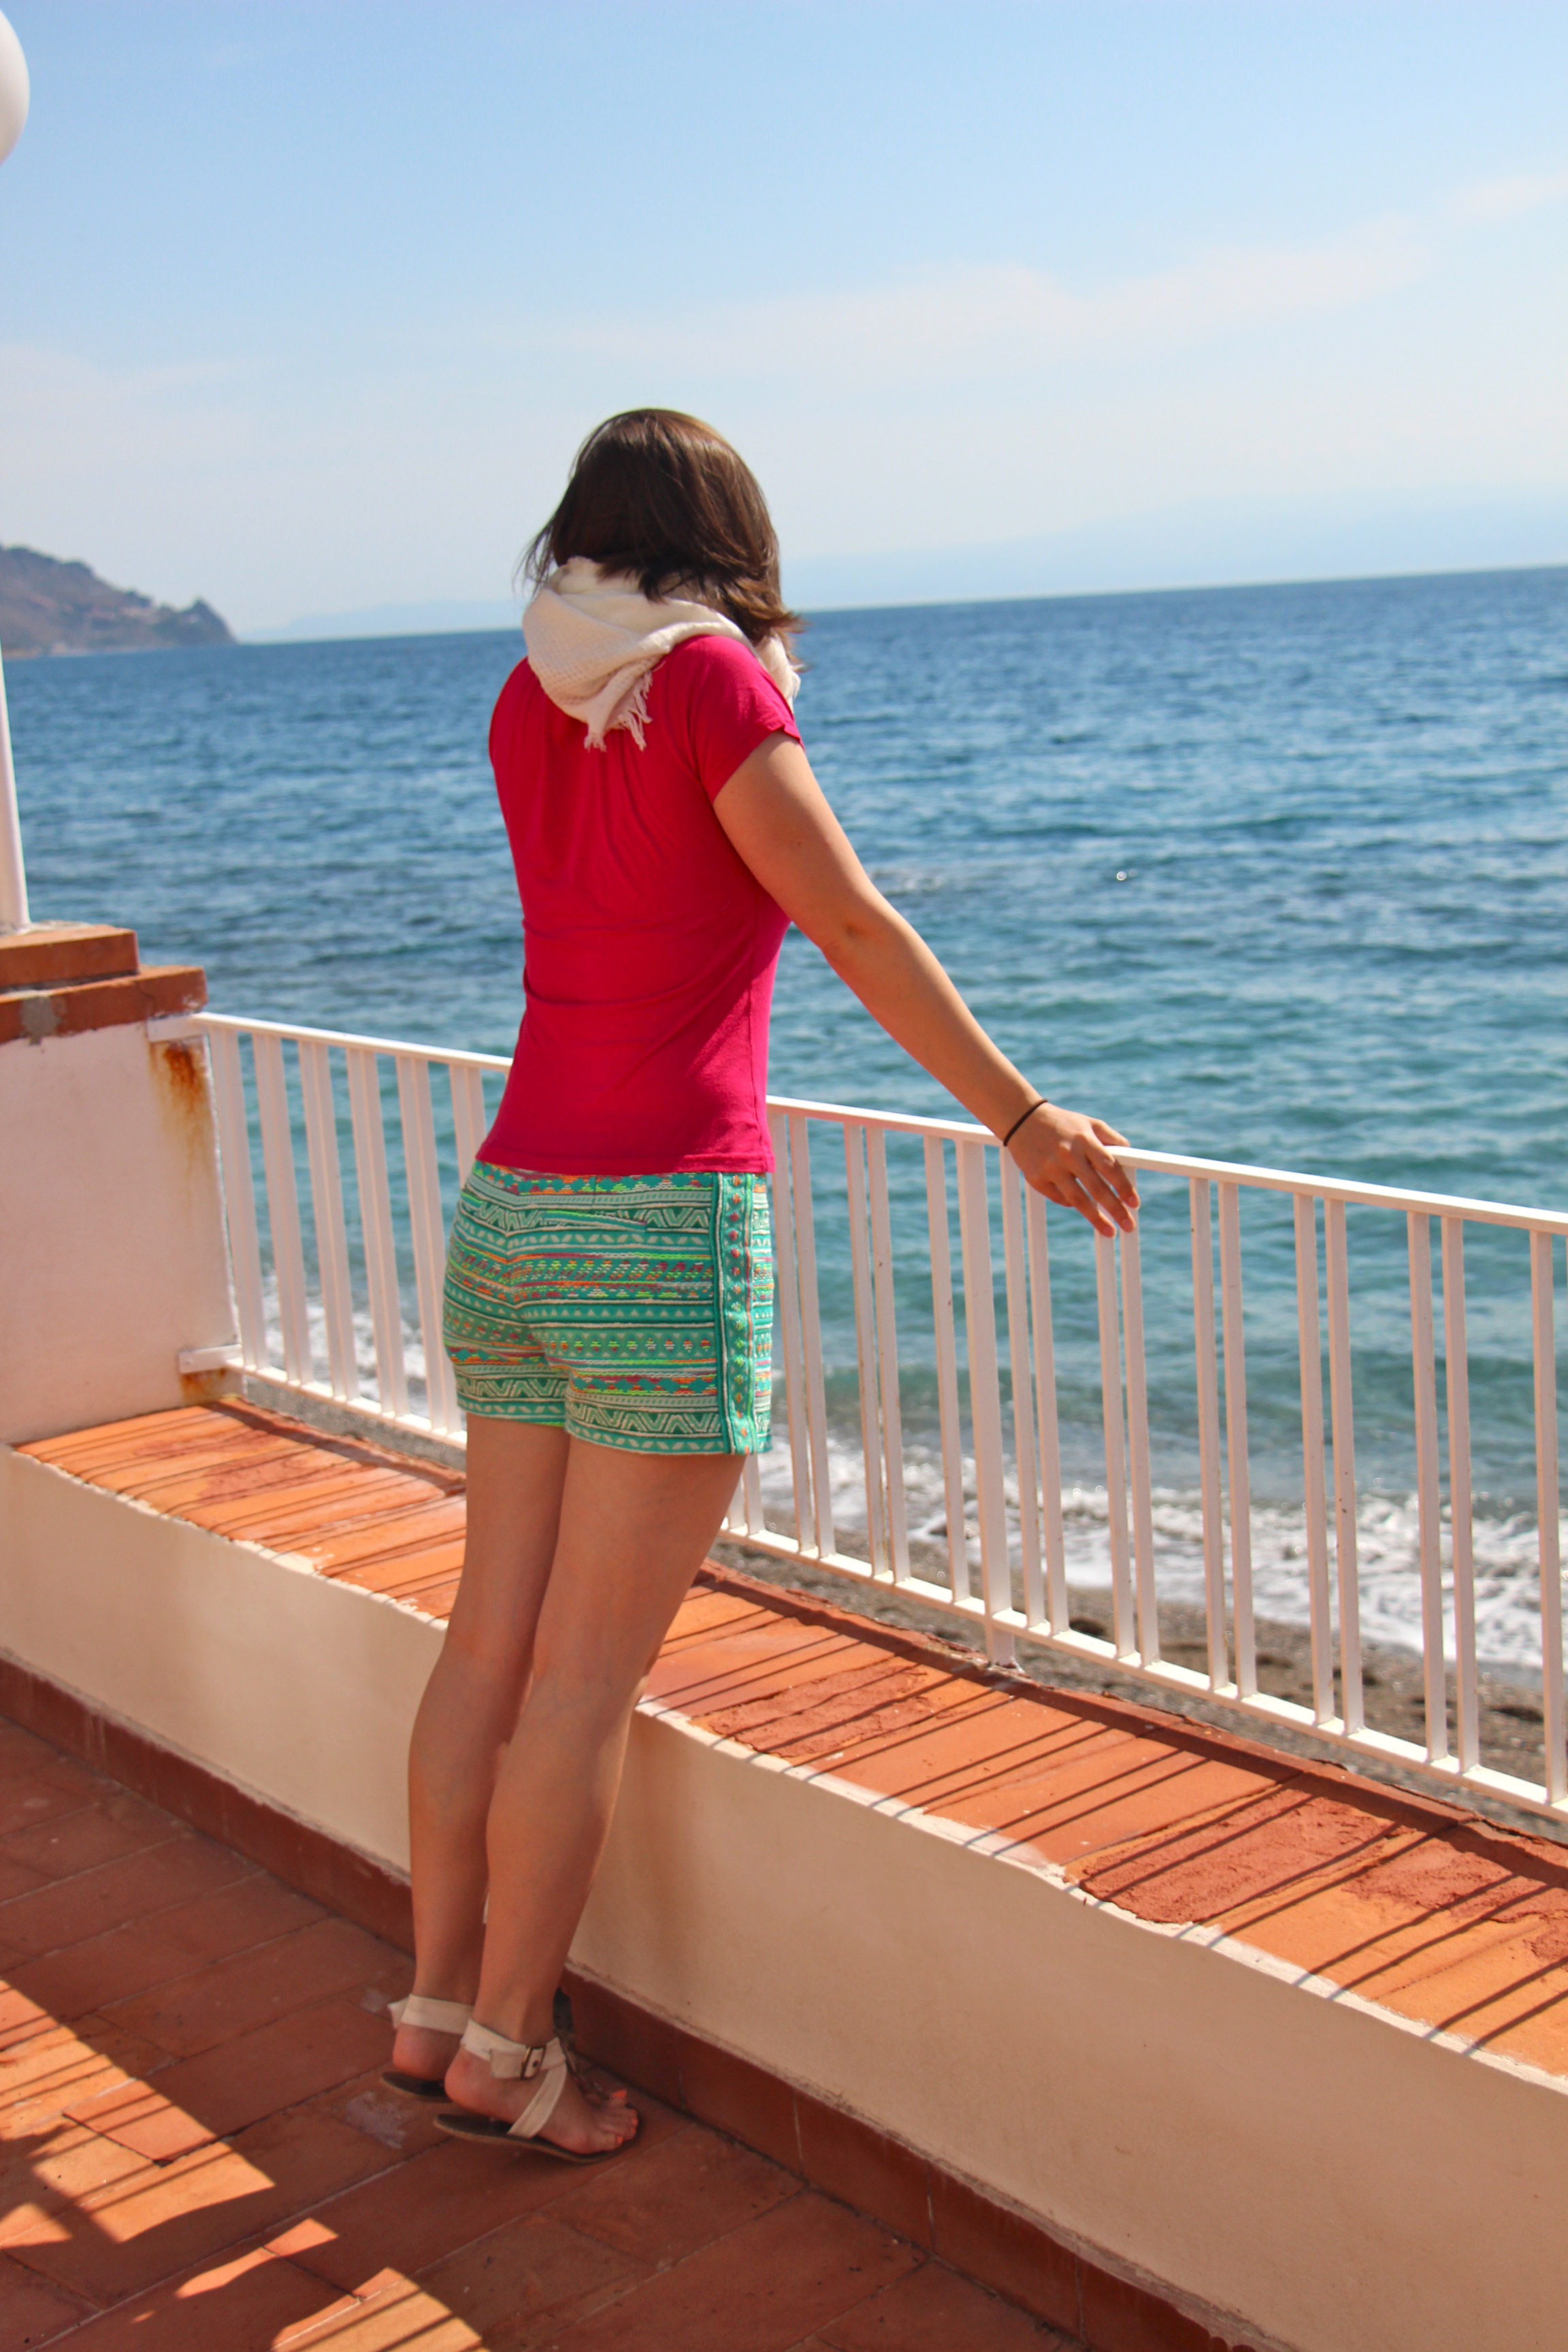 Young Woman Looking at Ocean in Sicily